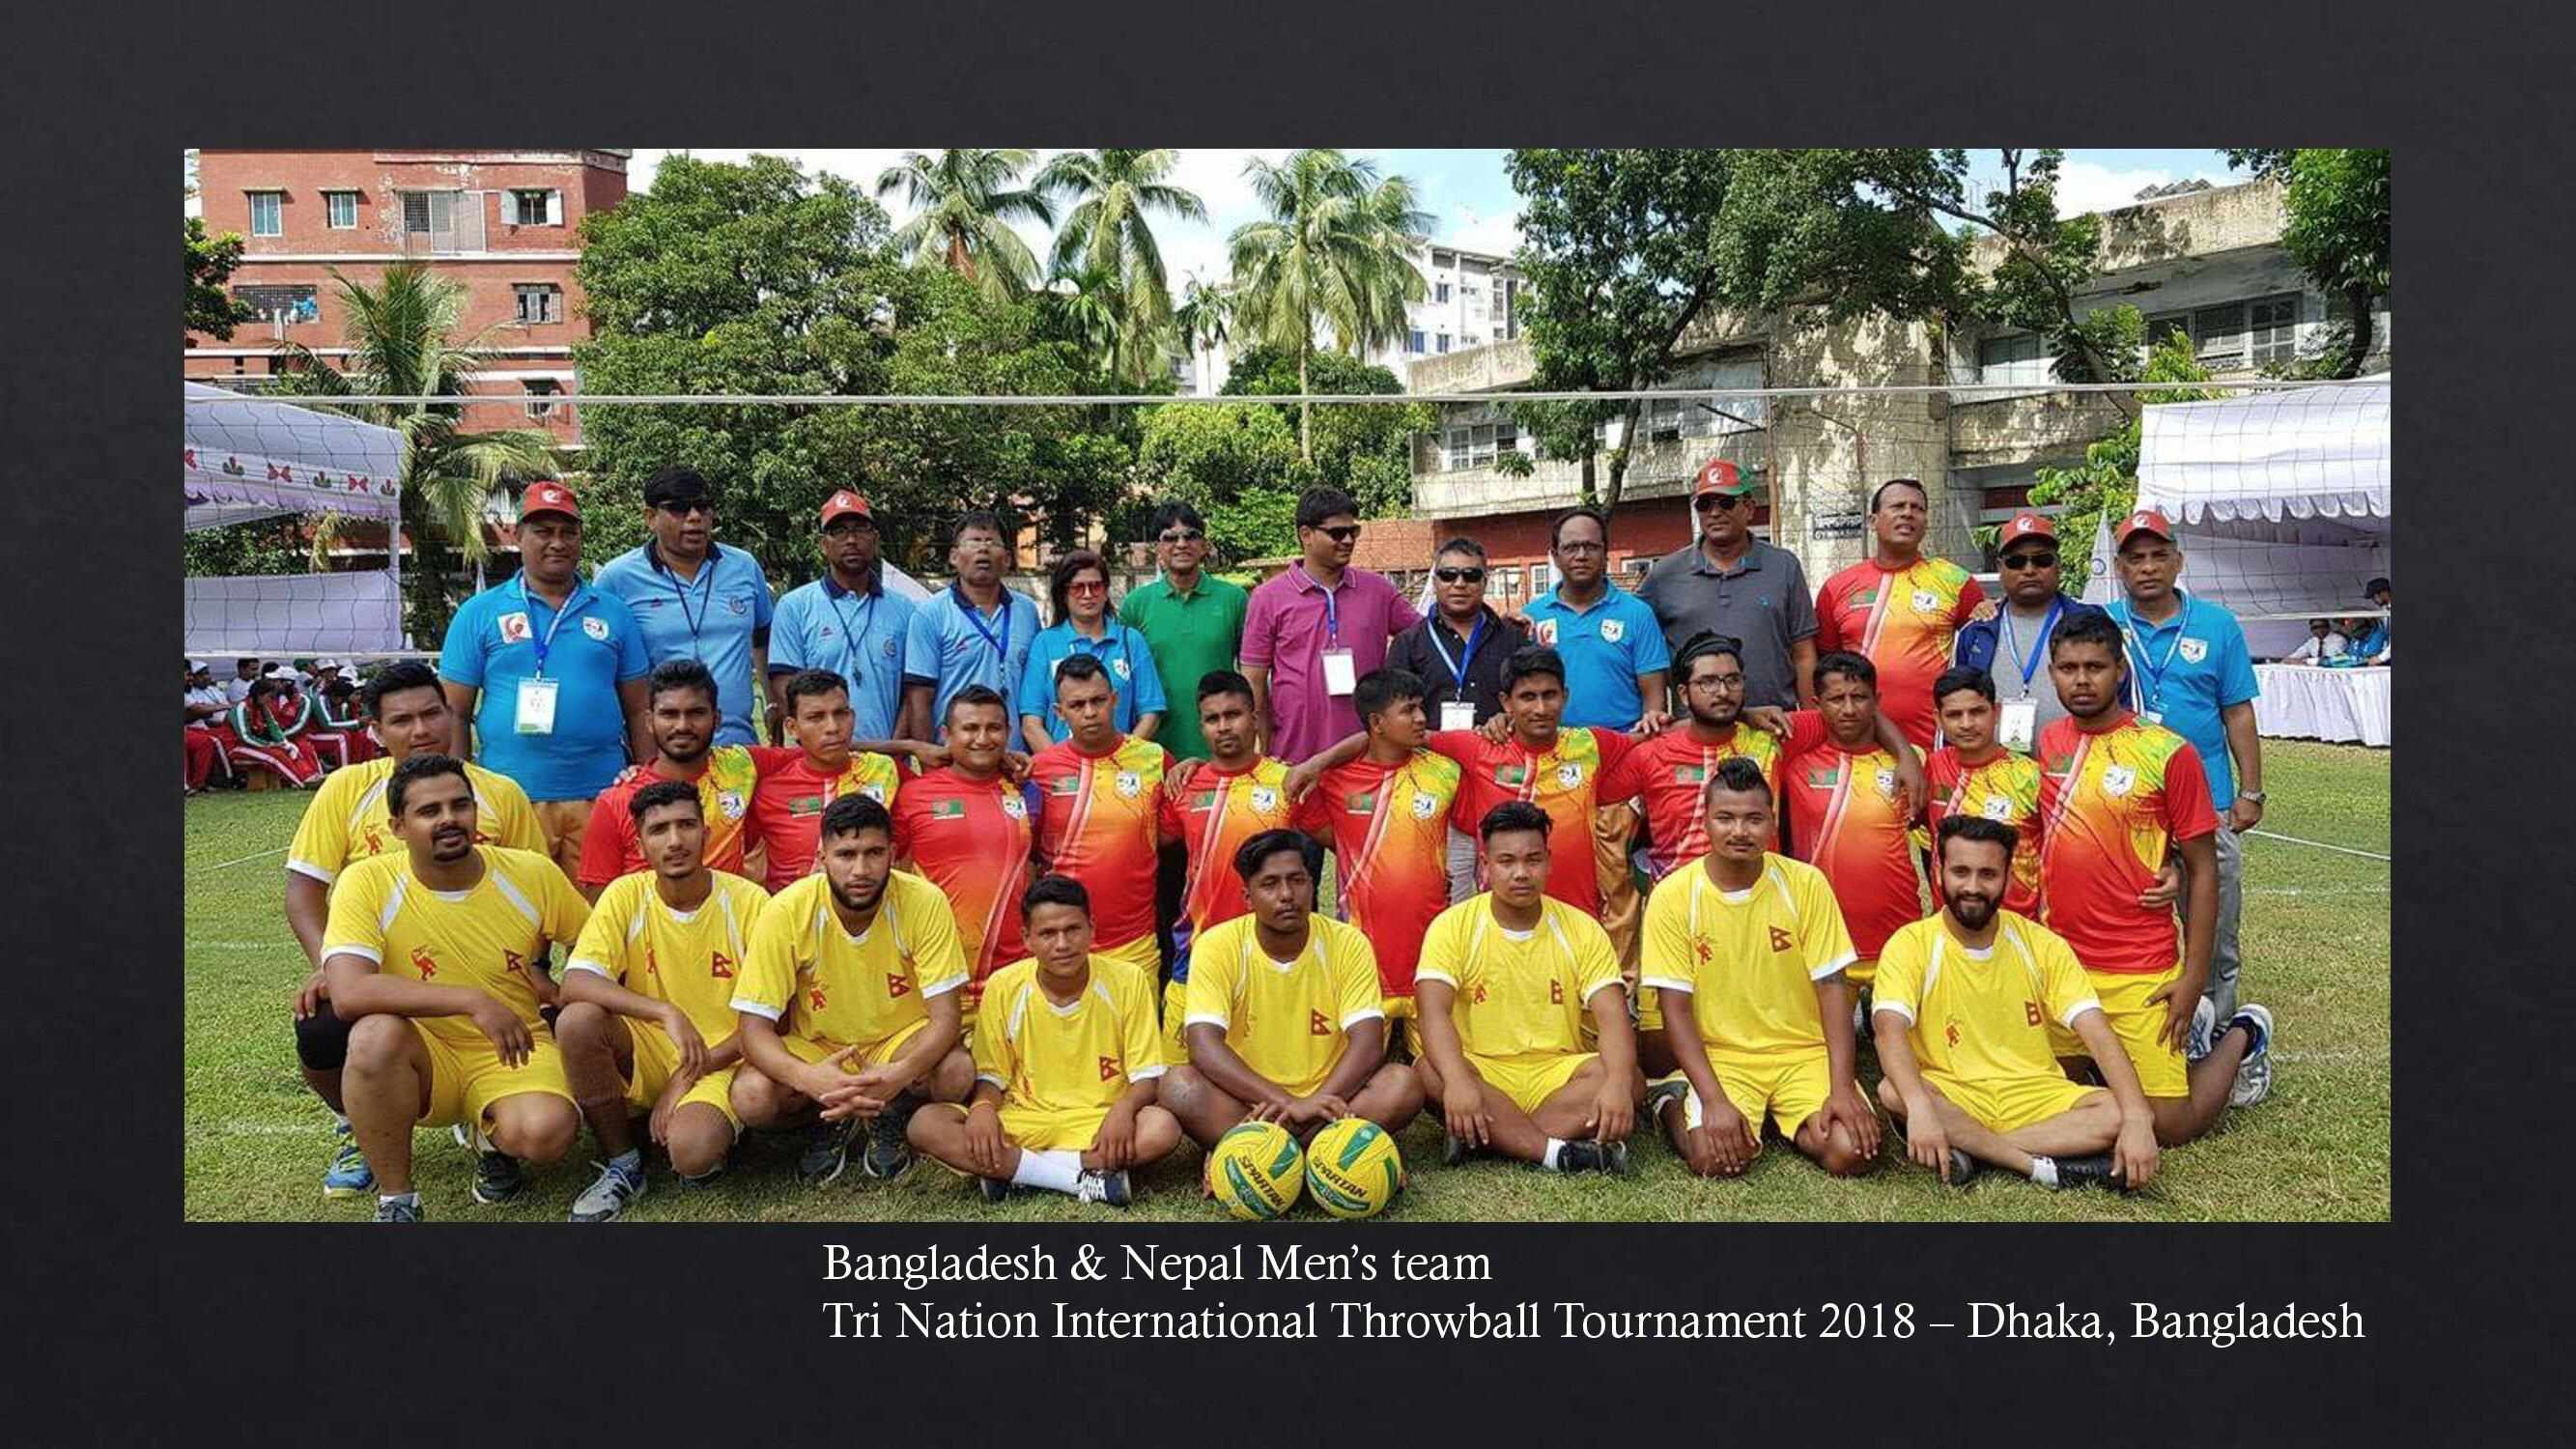 ThrowBall Federation Of India